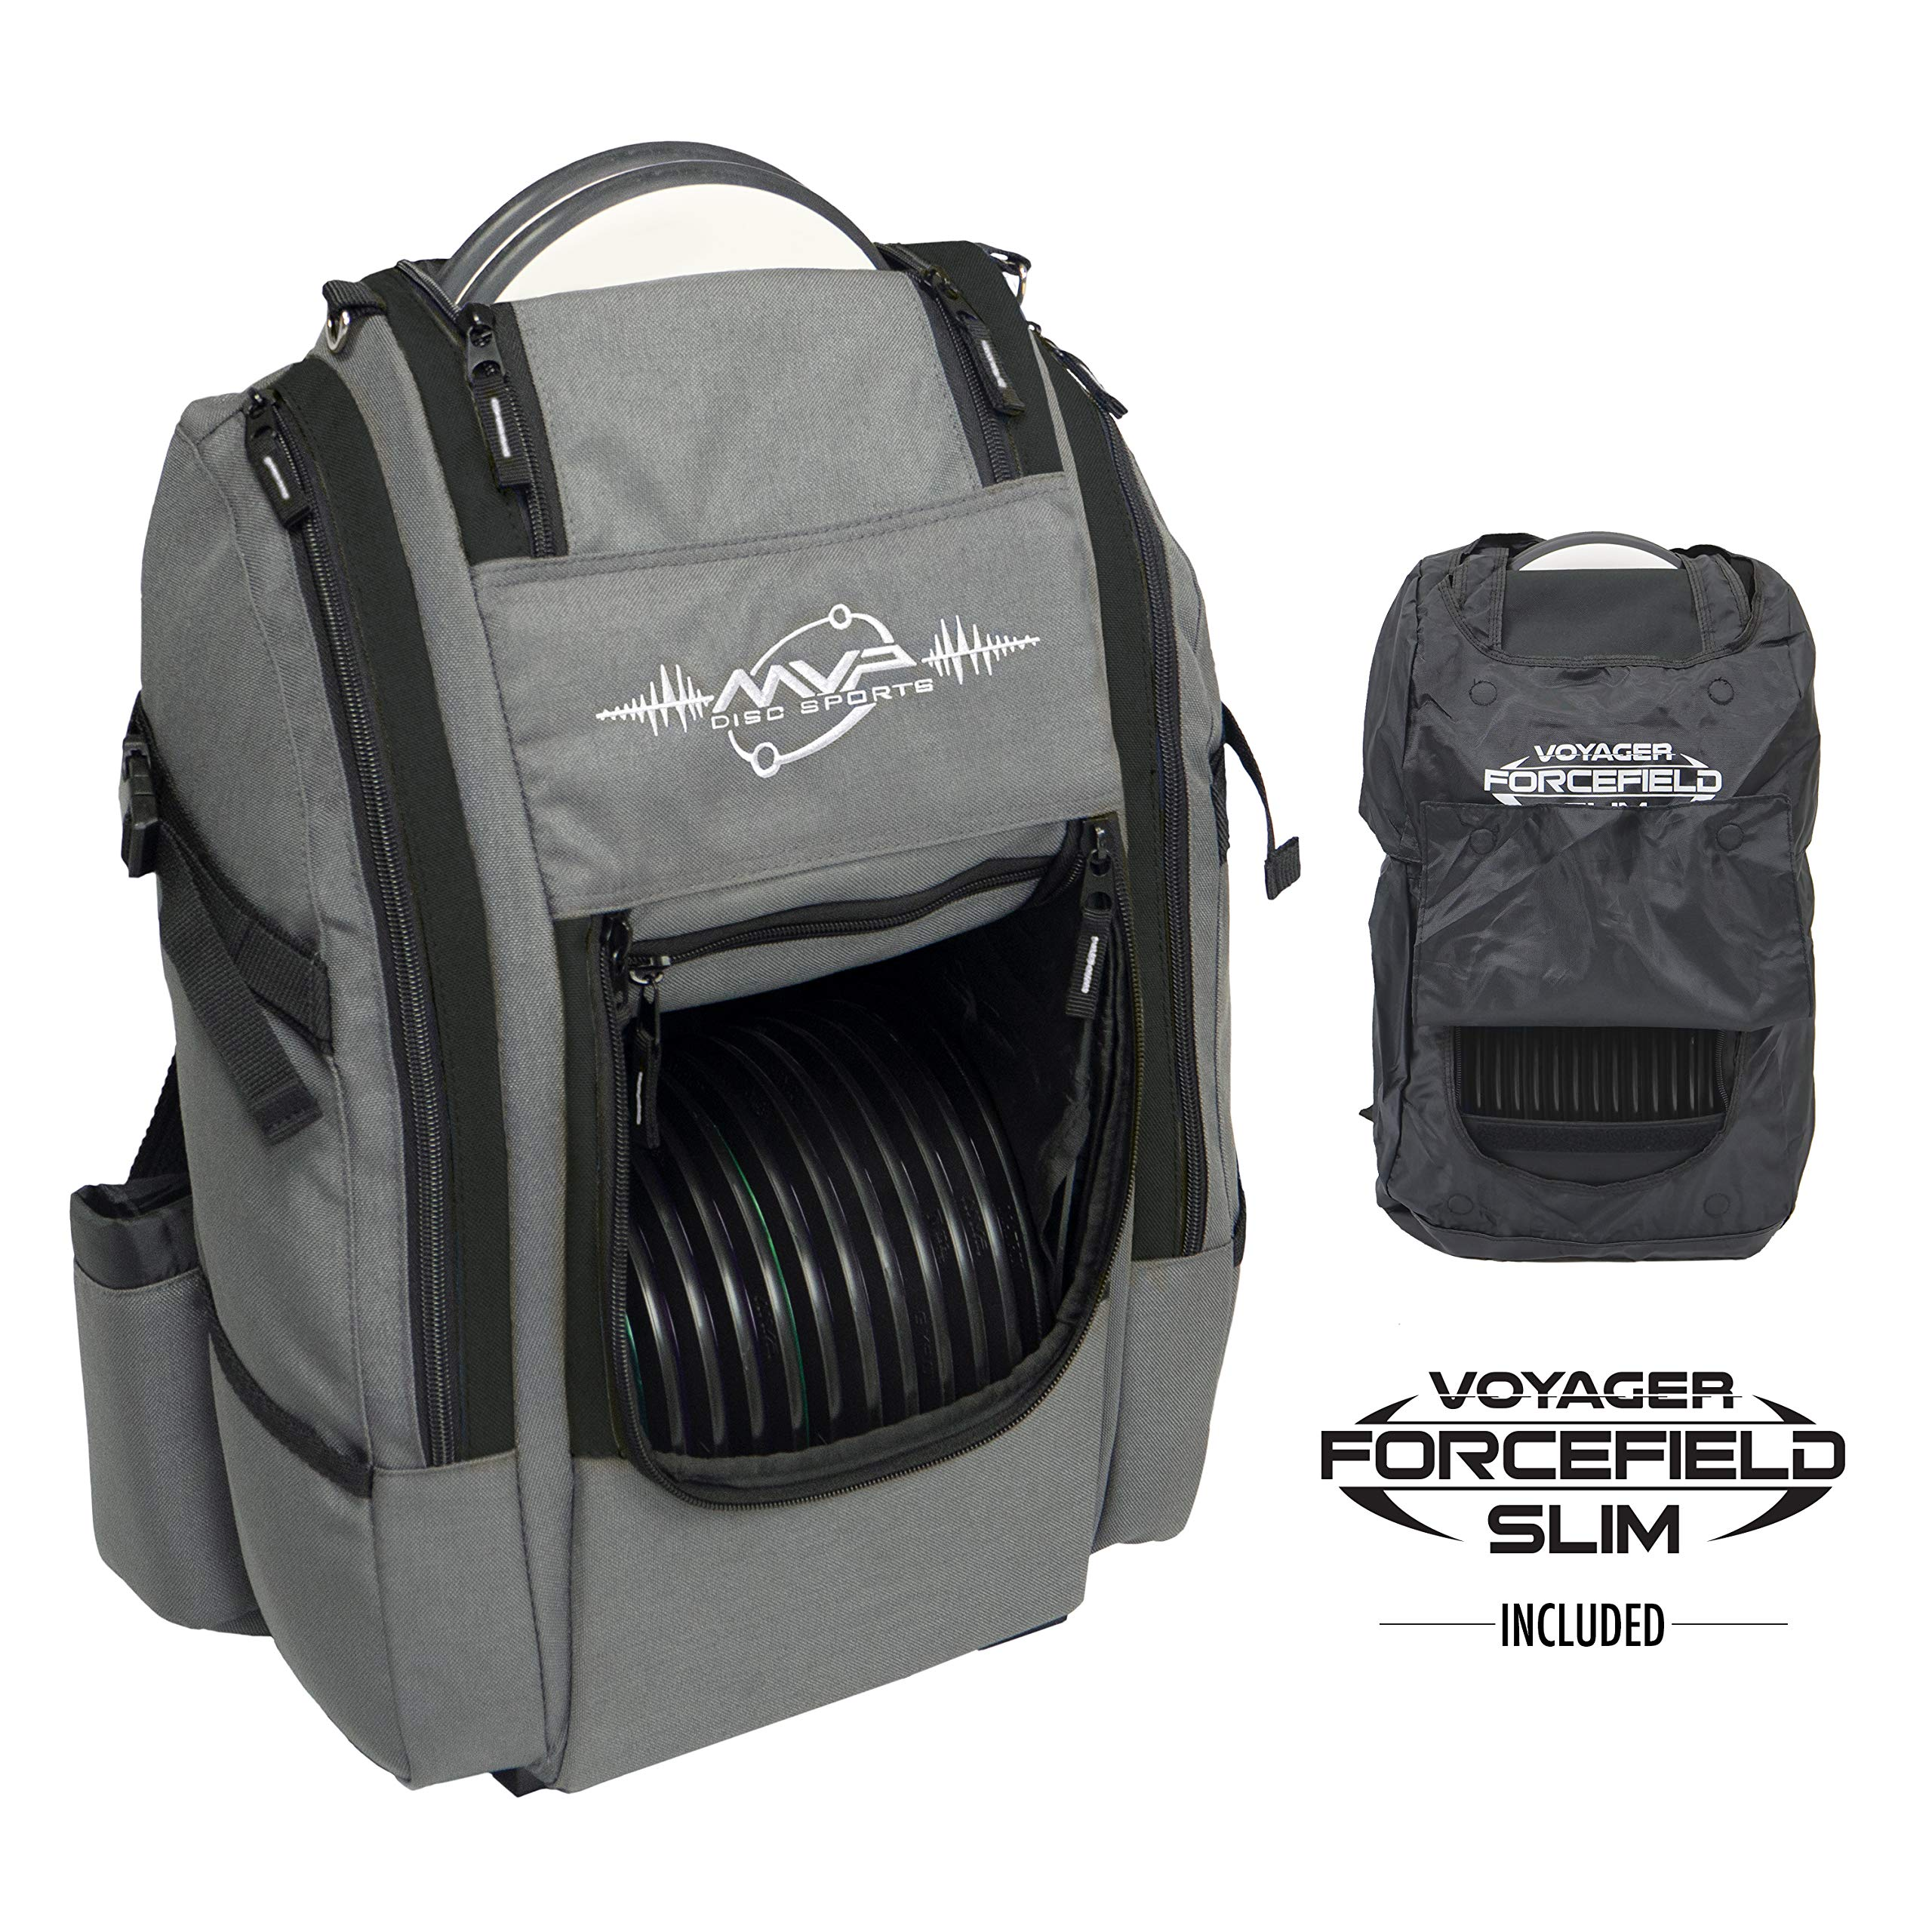 MVP Disc Sports Voyager Slim Bag (Gray/Black) + Forcefield by MVP Disc Sports